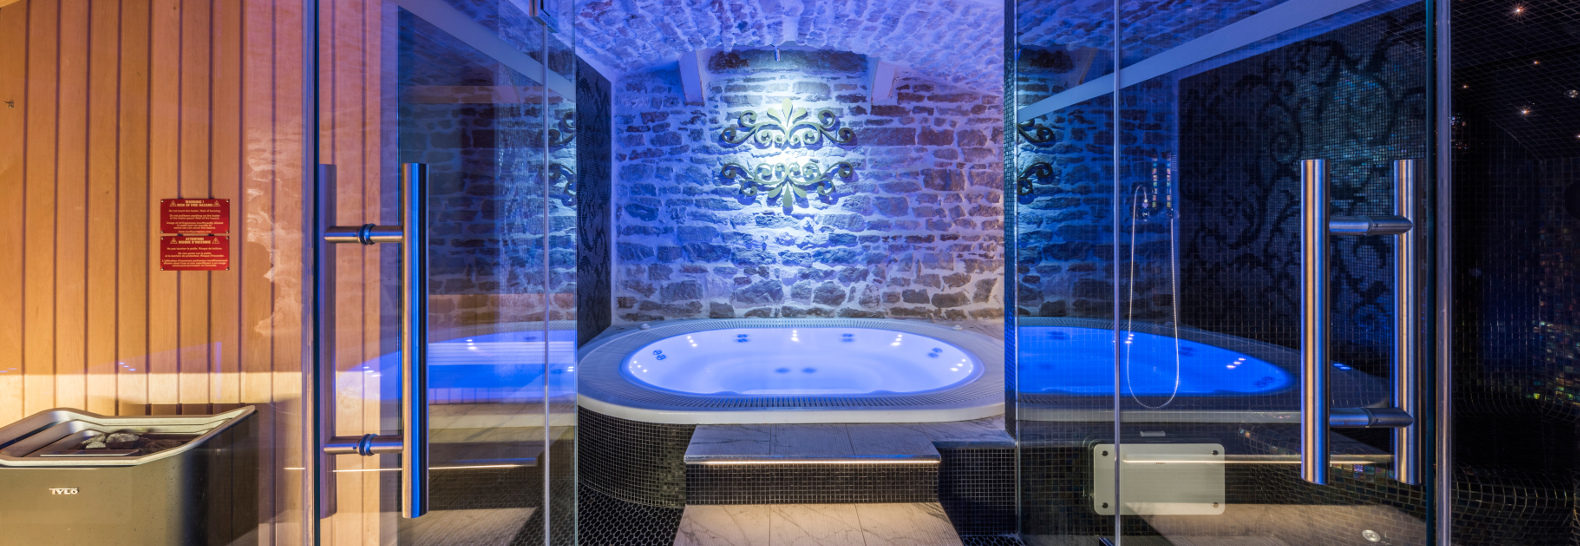 Former subterranean crypt in France transformed into a soothing spa ...